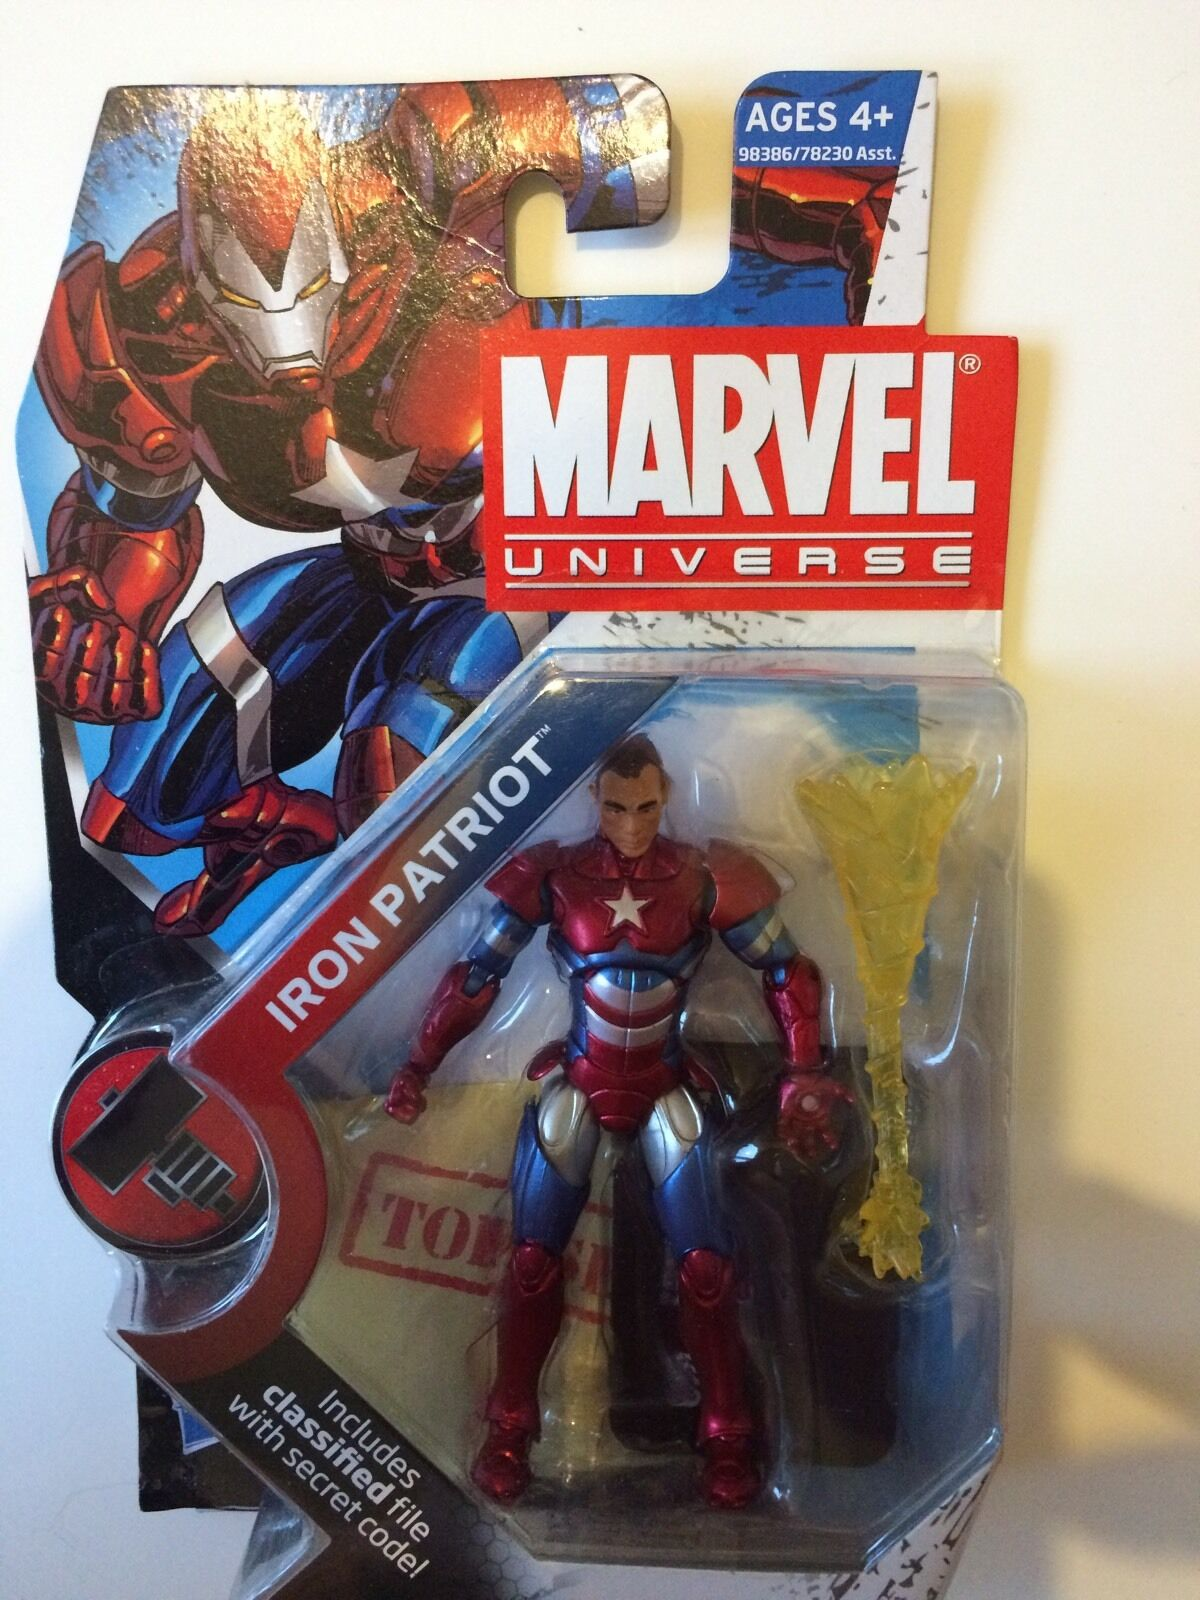 UNIVERSO MARVEL AVENGERS infinite Figure 3.75  MOC Nuovo di zecca/IRON PATRIOT